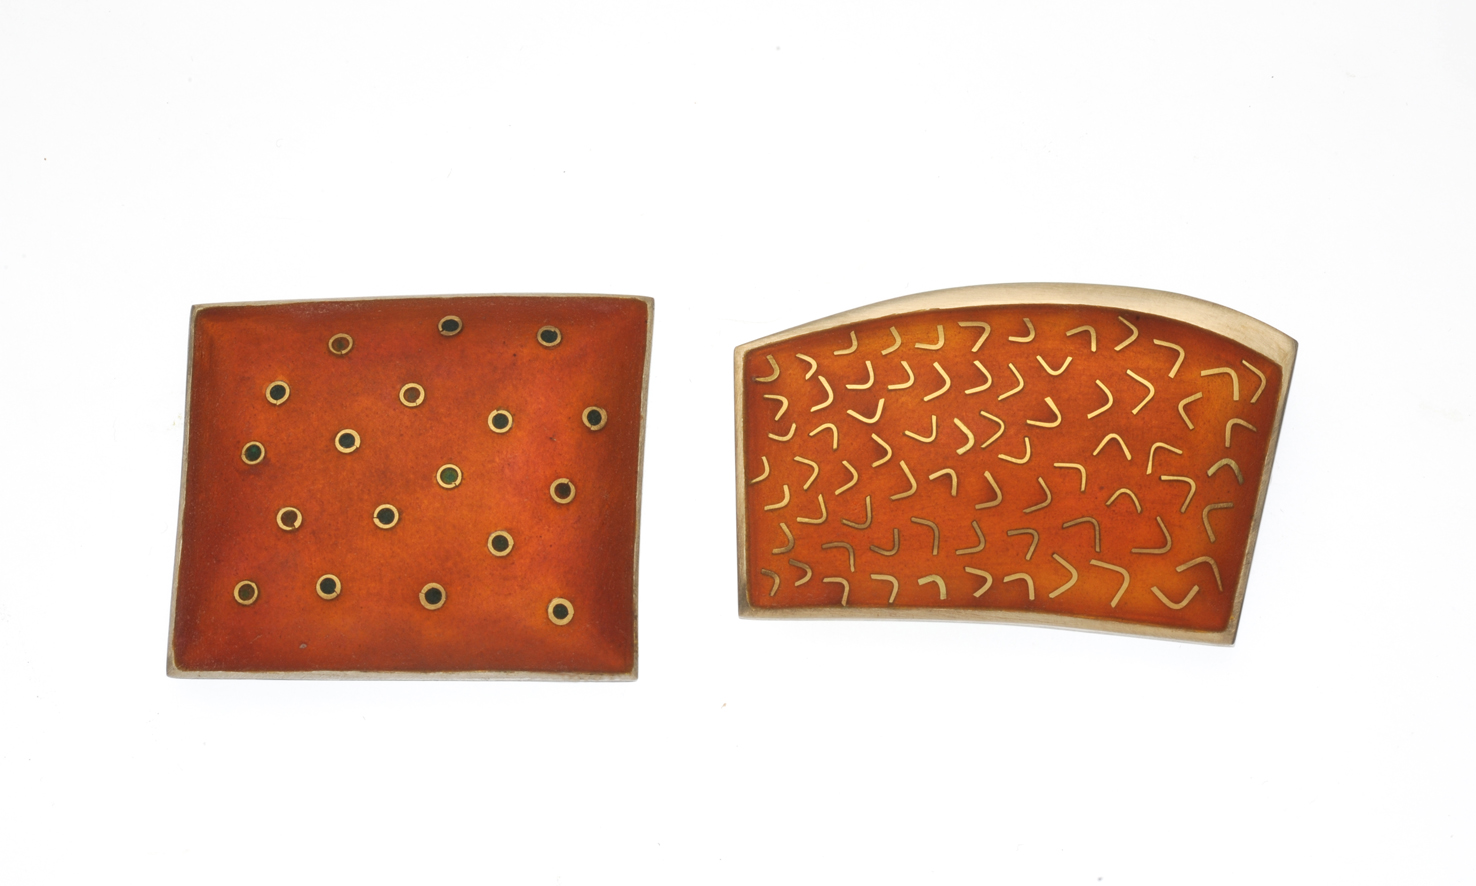 Coral Cod Brooches, 925 Silver, 750 gold, cloisonne enamel.